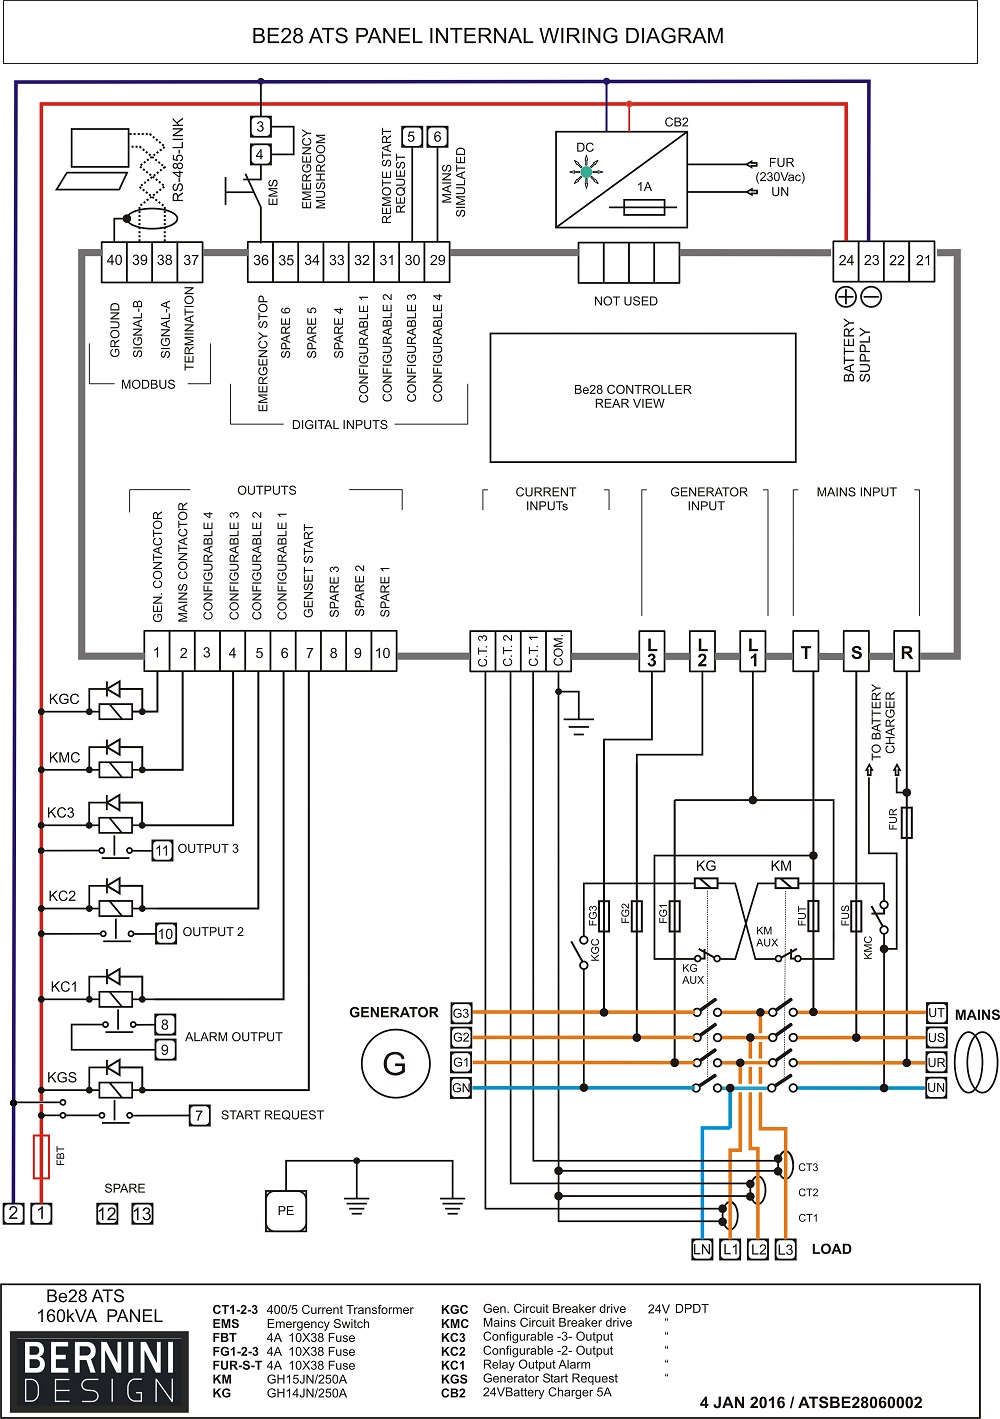 asco transfer switch wiring diagram Download-Automatic Transfer Switch Between Solargenerator And FS Generac Wiring Diagram 17-h